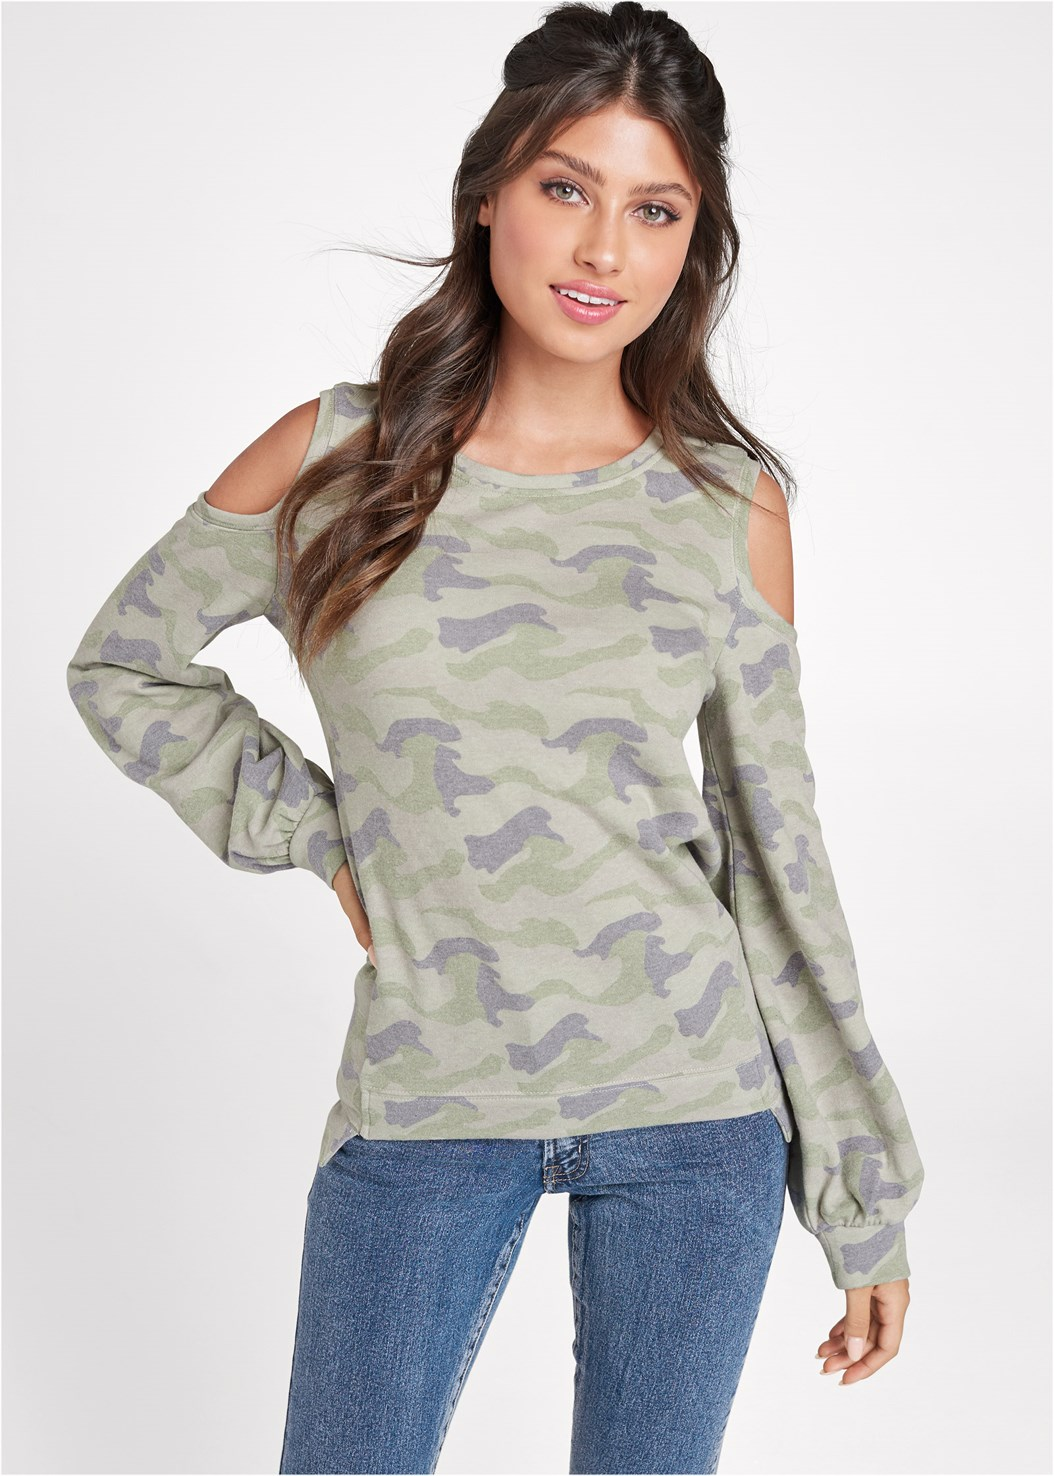 Camo Balloon Sleeve Sweatshirt,Mid Rise Color Skinny Jeans